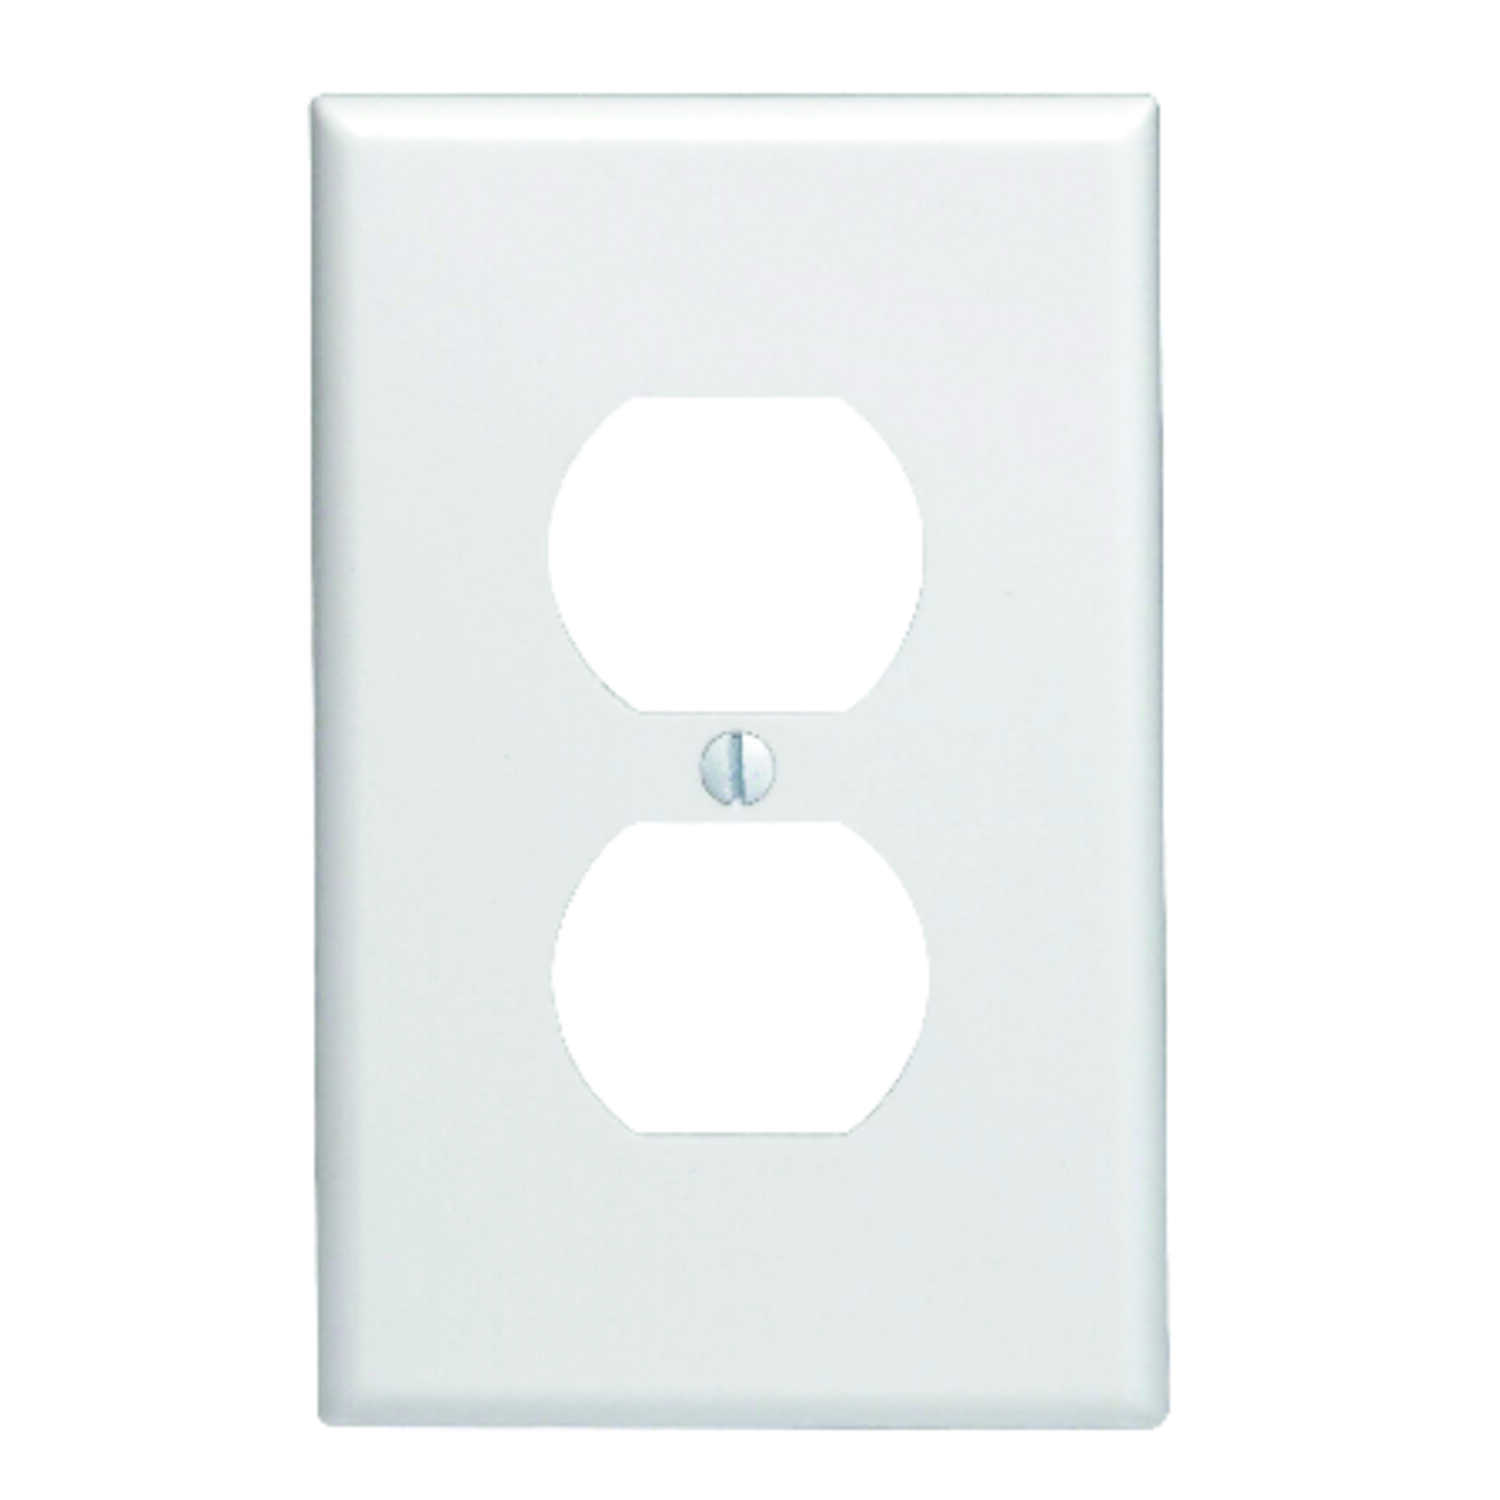 Leviton  White  1 gang Plastic  Duplex Outlet  Wall Plate  1 pk